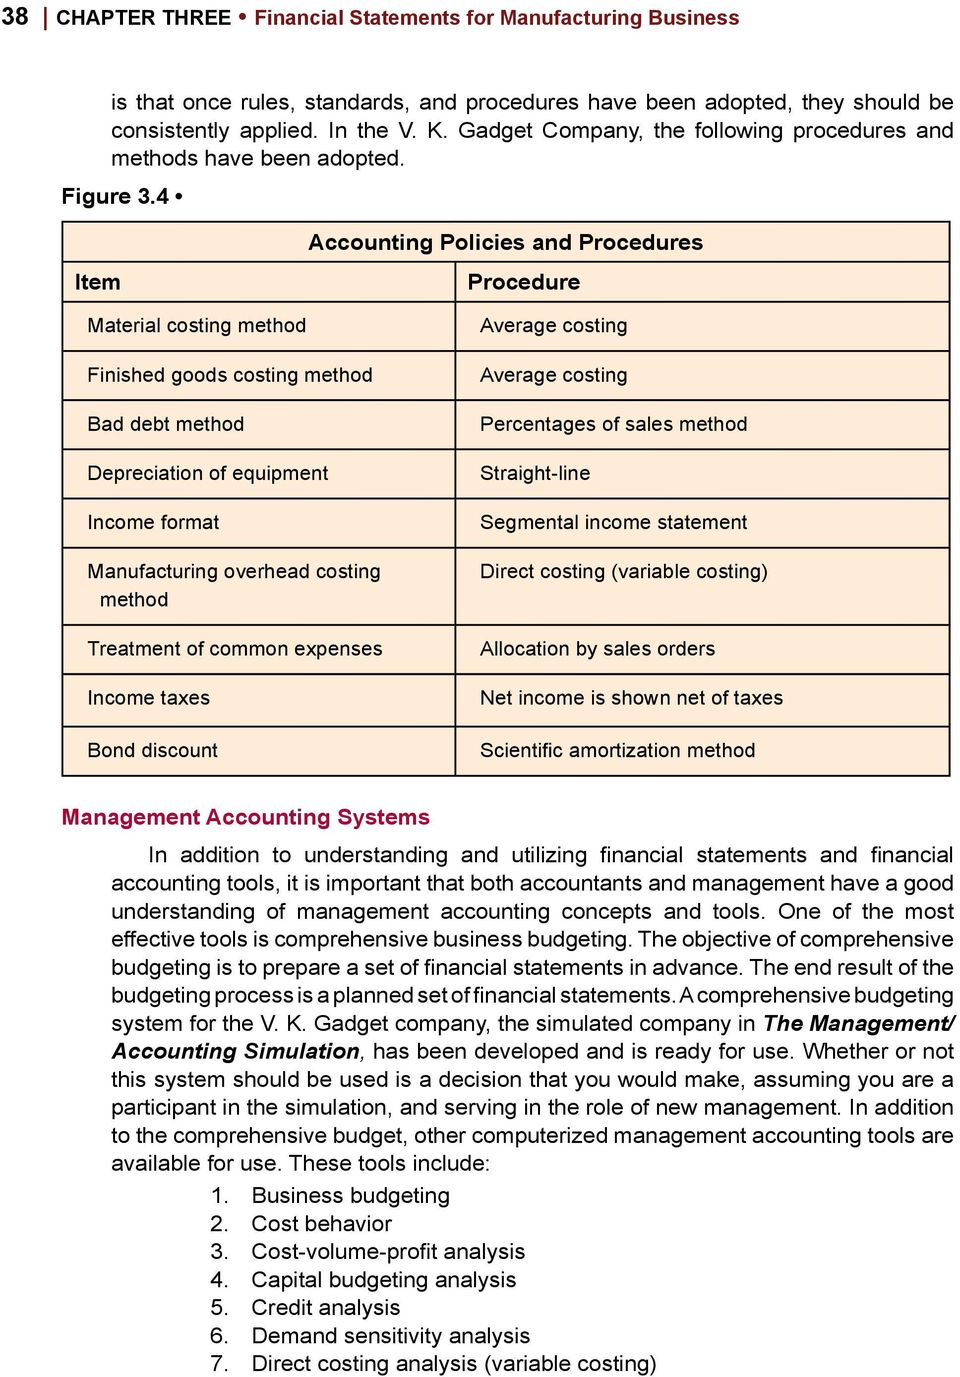 4 Accounting Policies and Procedures Item Material costing method Finished goods costing method Bad debt method Depreciation of equipment Income format Manufacturing overhead costing method Treatment